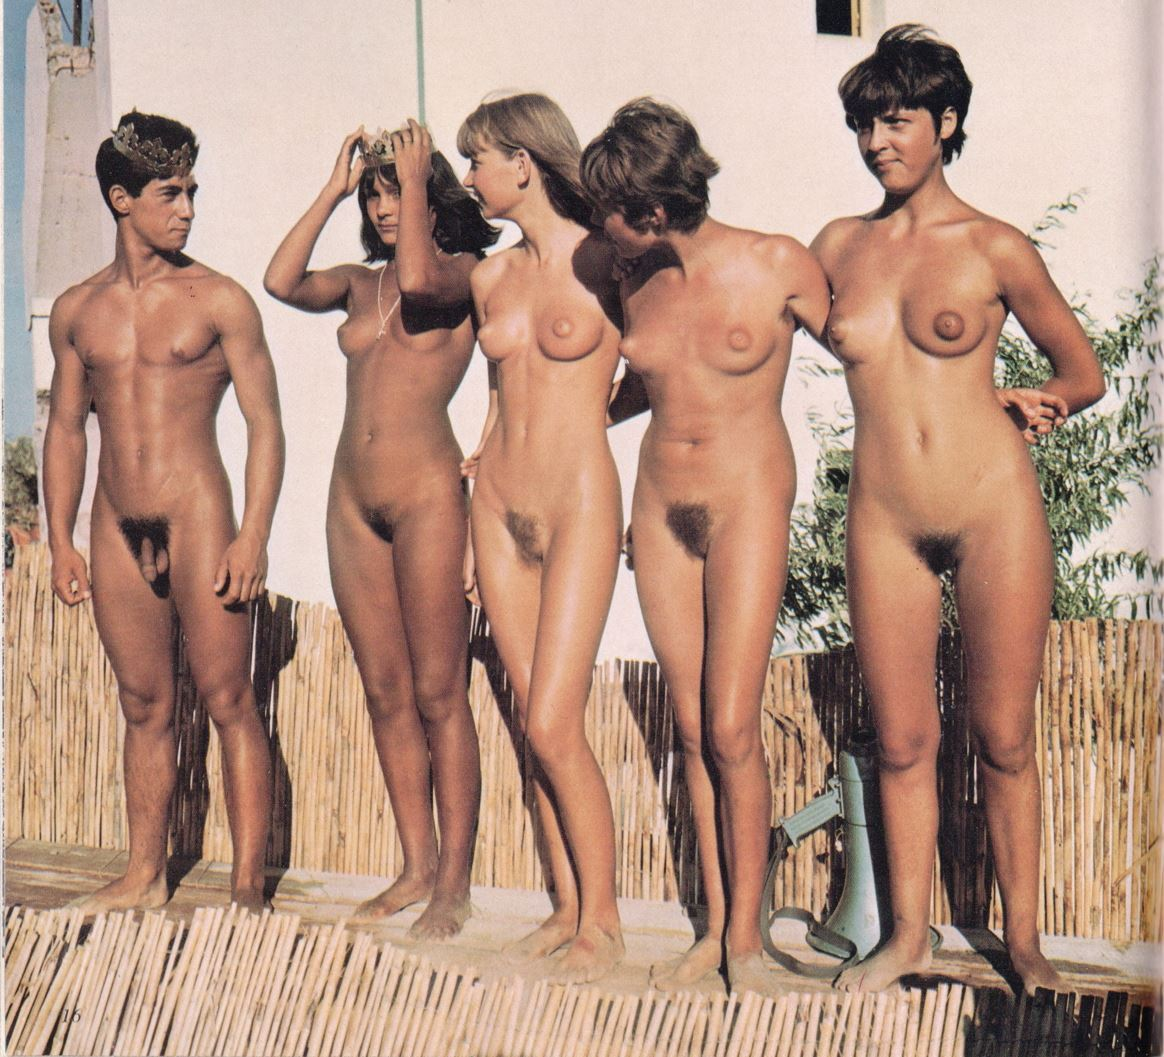 Latina beauty! nudist girls groups